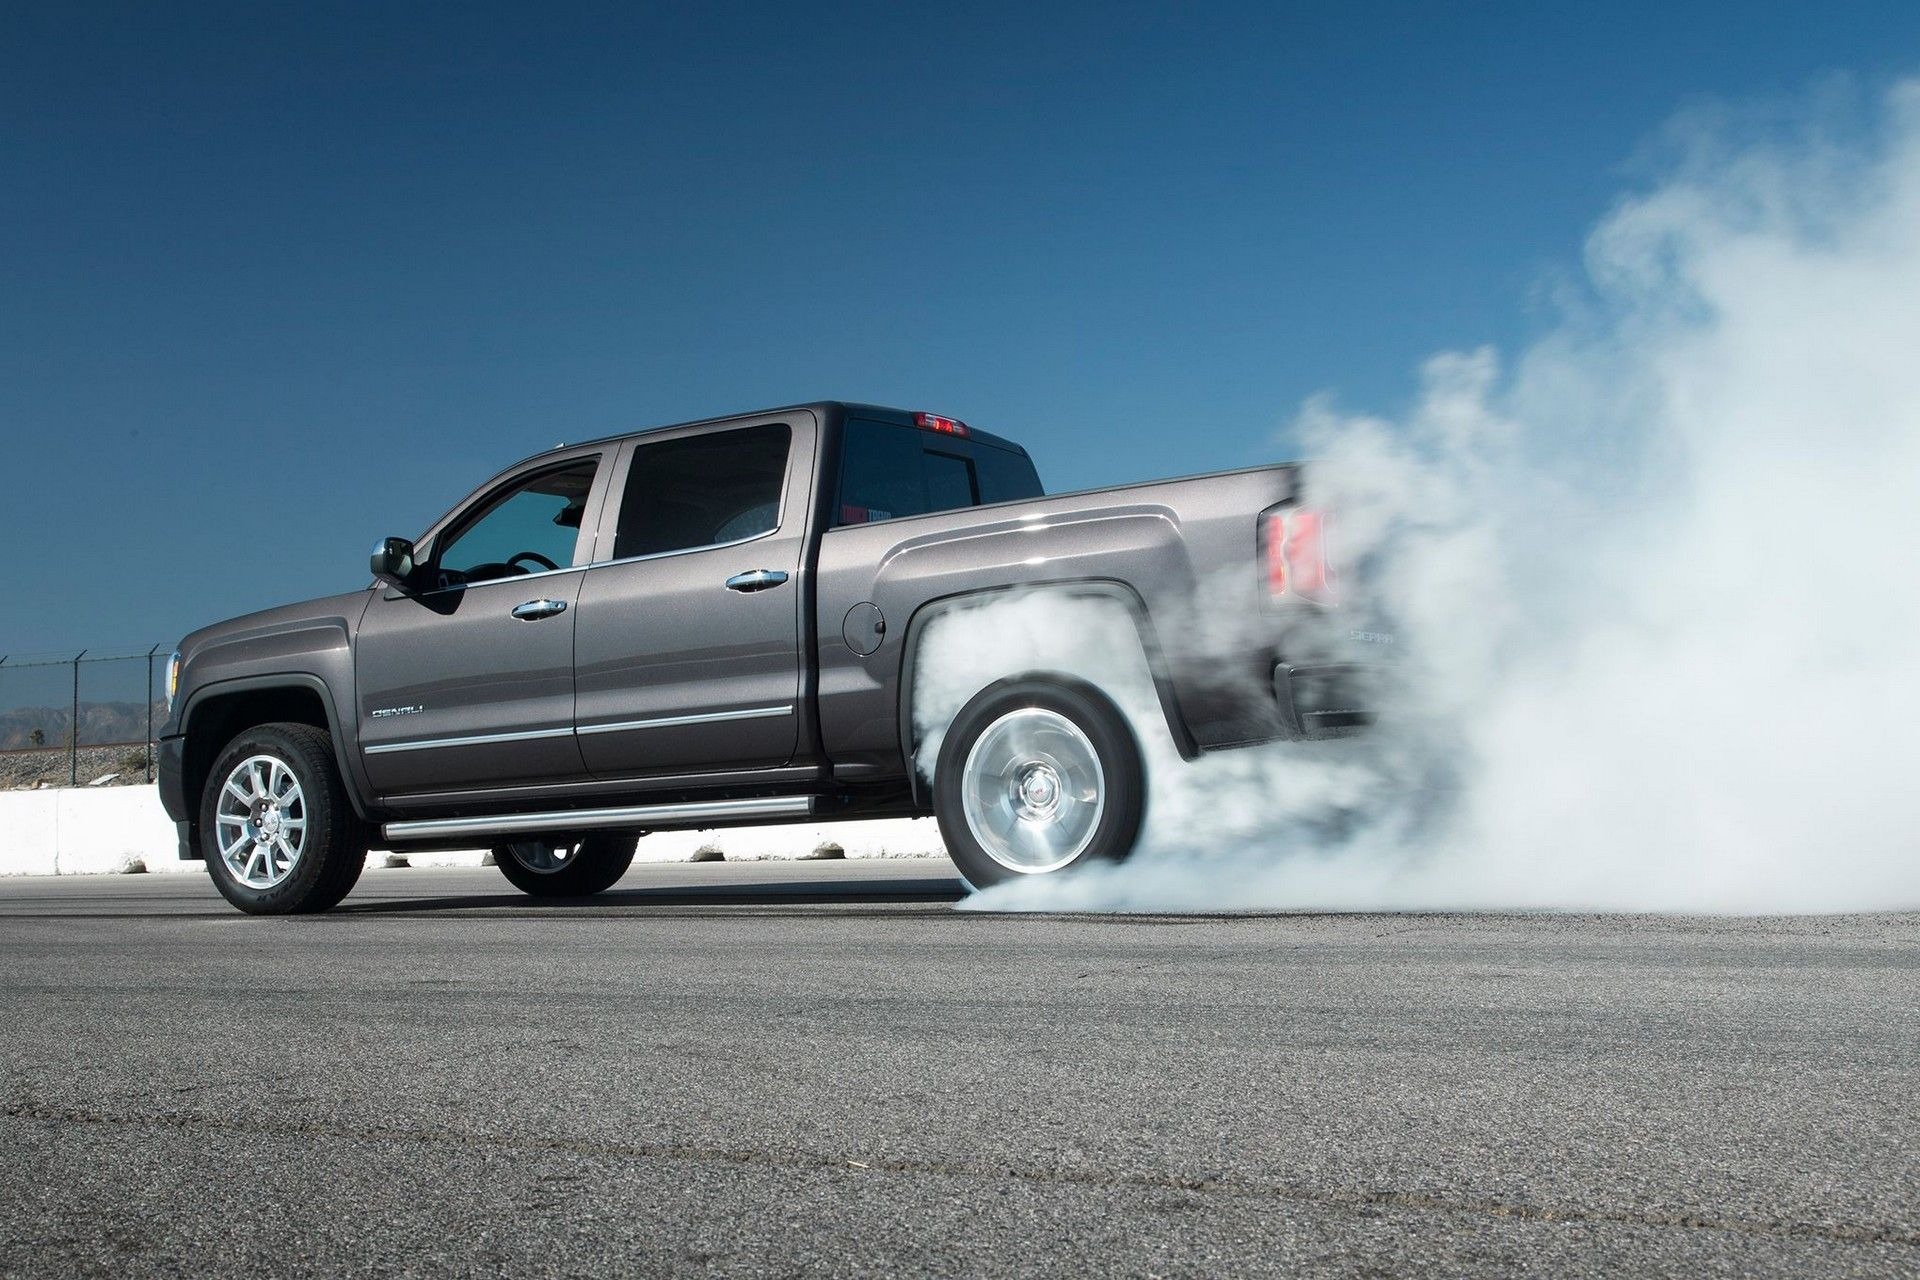 2020 Gmc Sierra Denali Crew Cab Review Mpg Interior